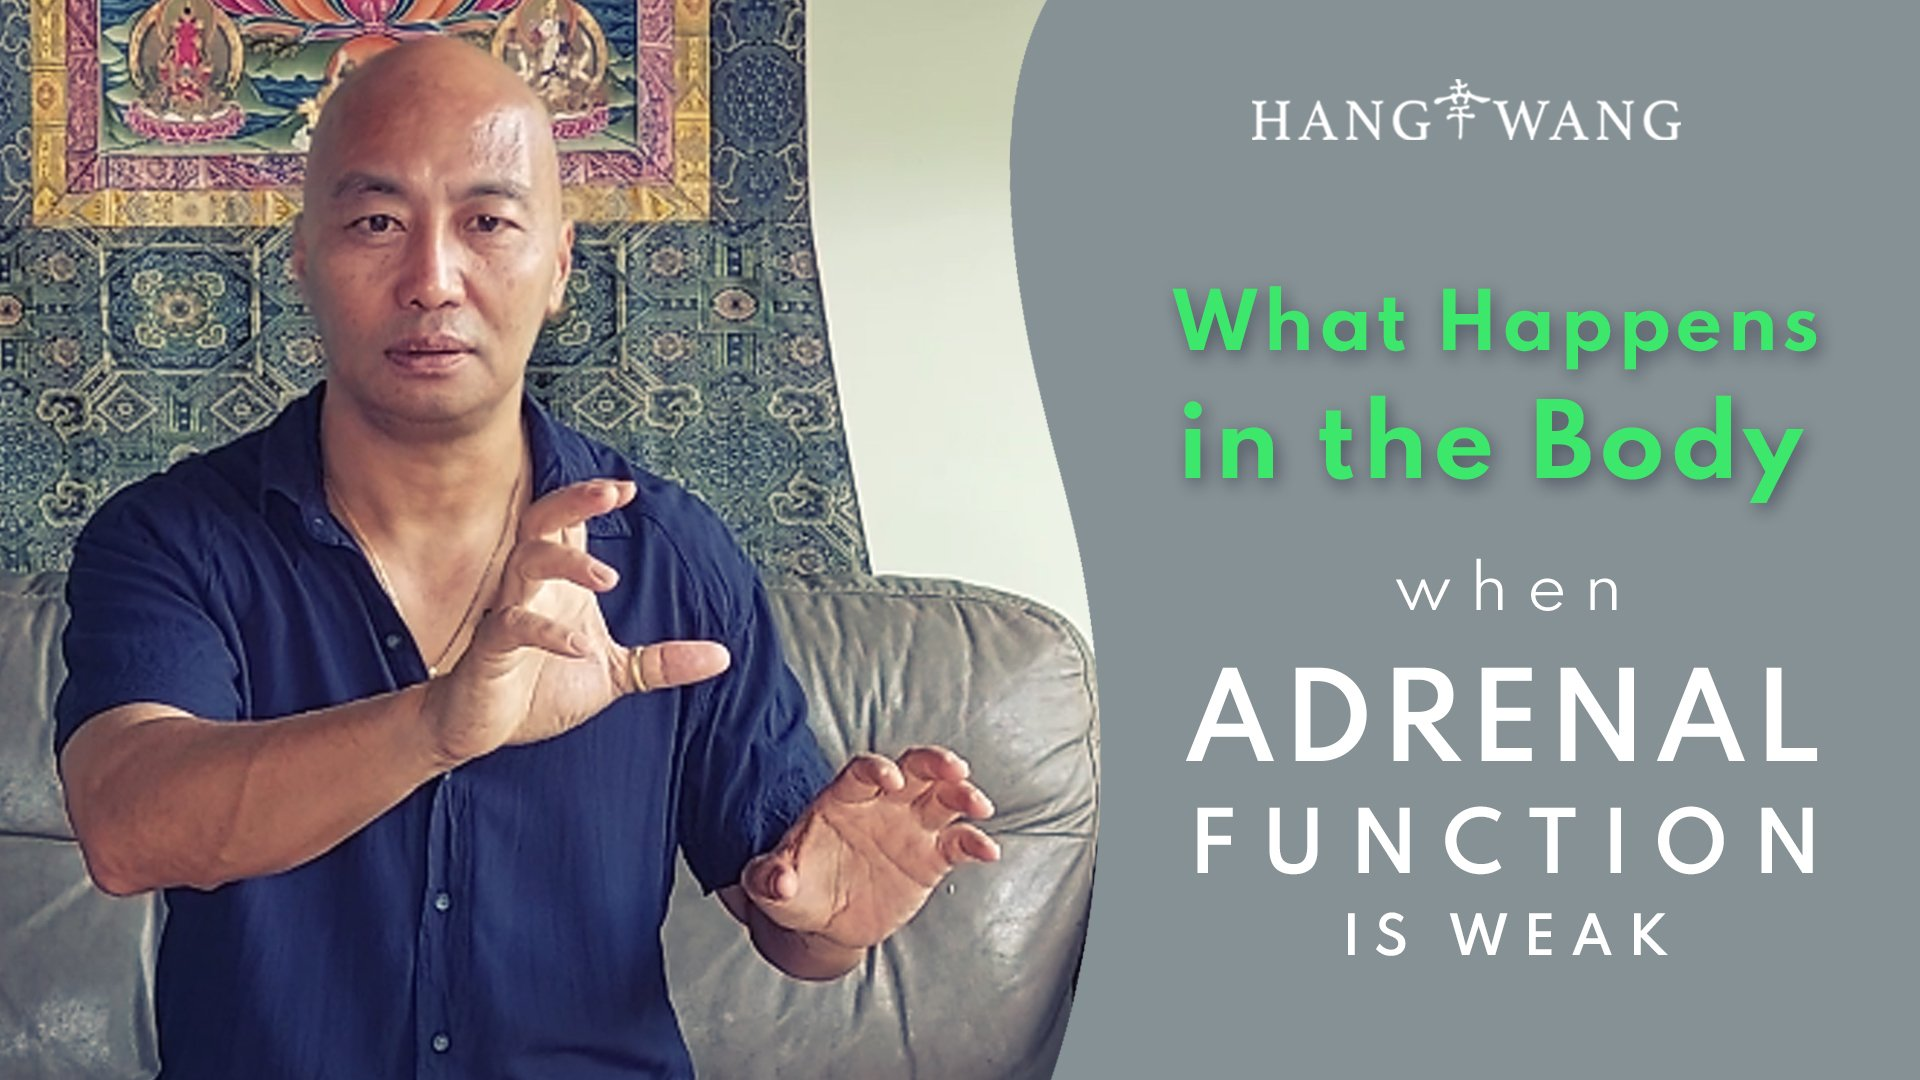 What Happens in the Body when the Adrenal Function is Weak